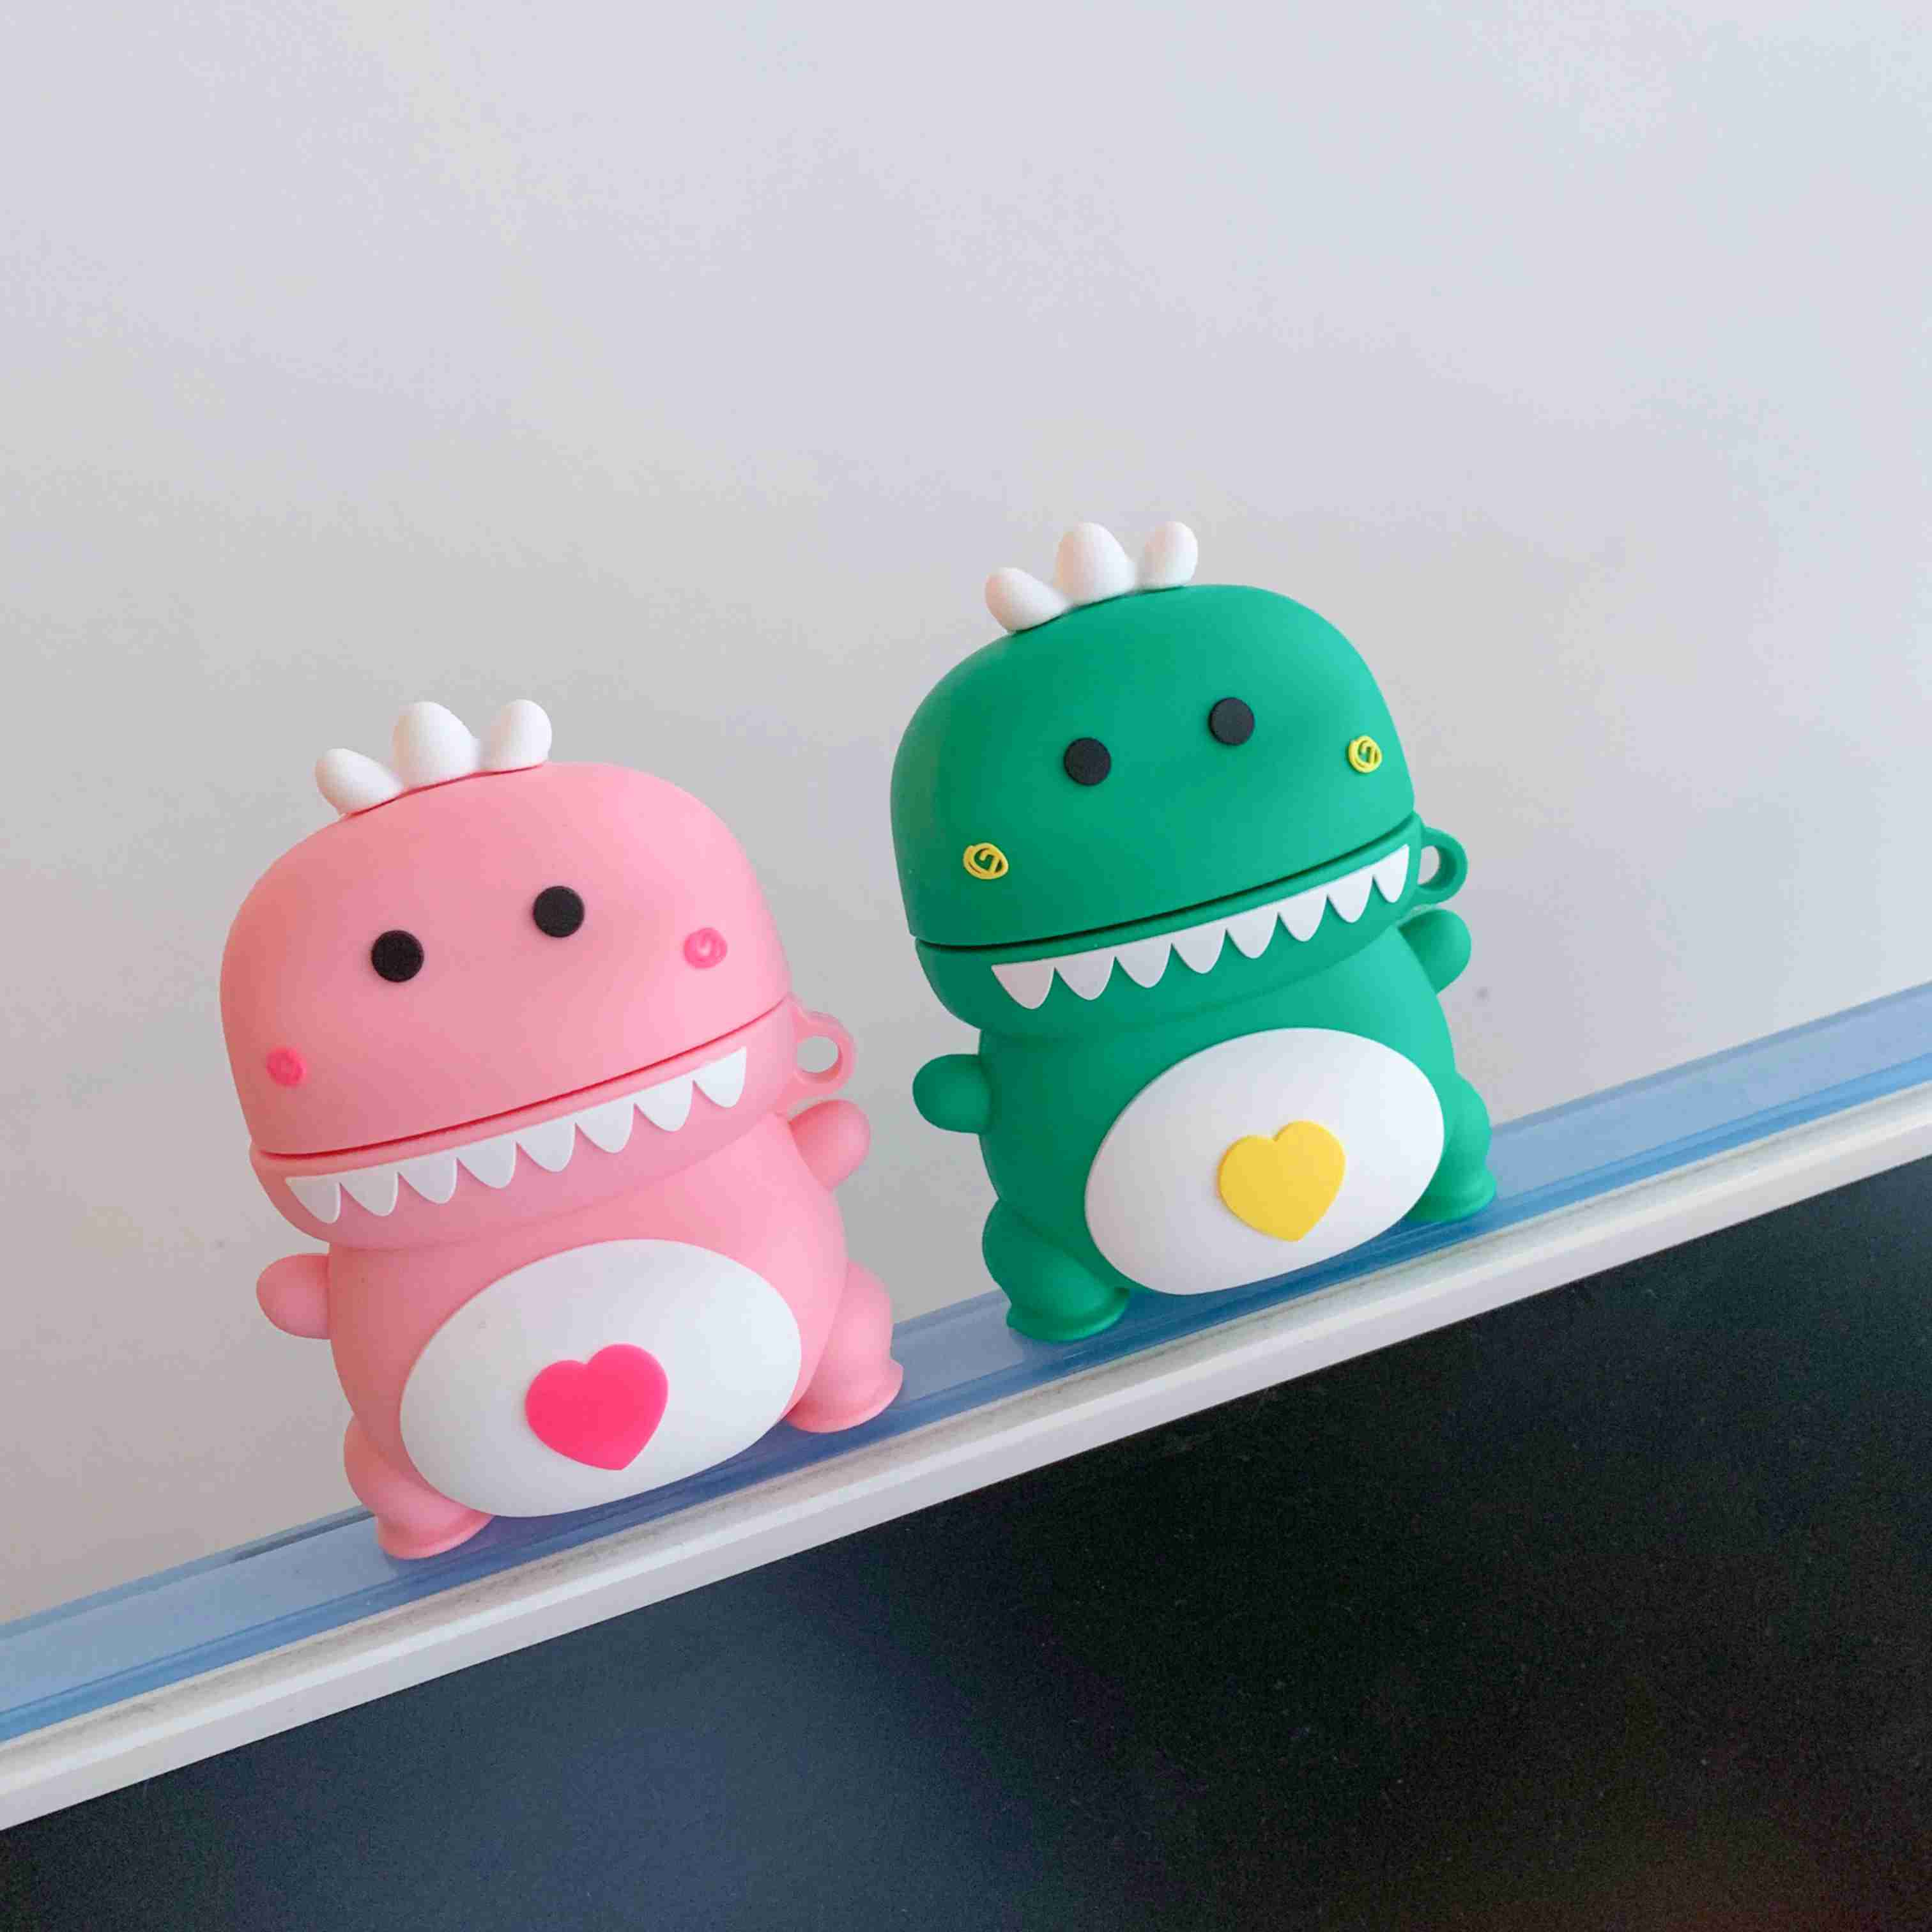 For AirPods Case Cartoon Cute Dinosaur Pattern High Quality Silicone Protection Case For Apple Air Pods 2 Wireless Earphone Case